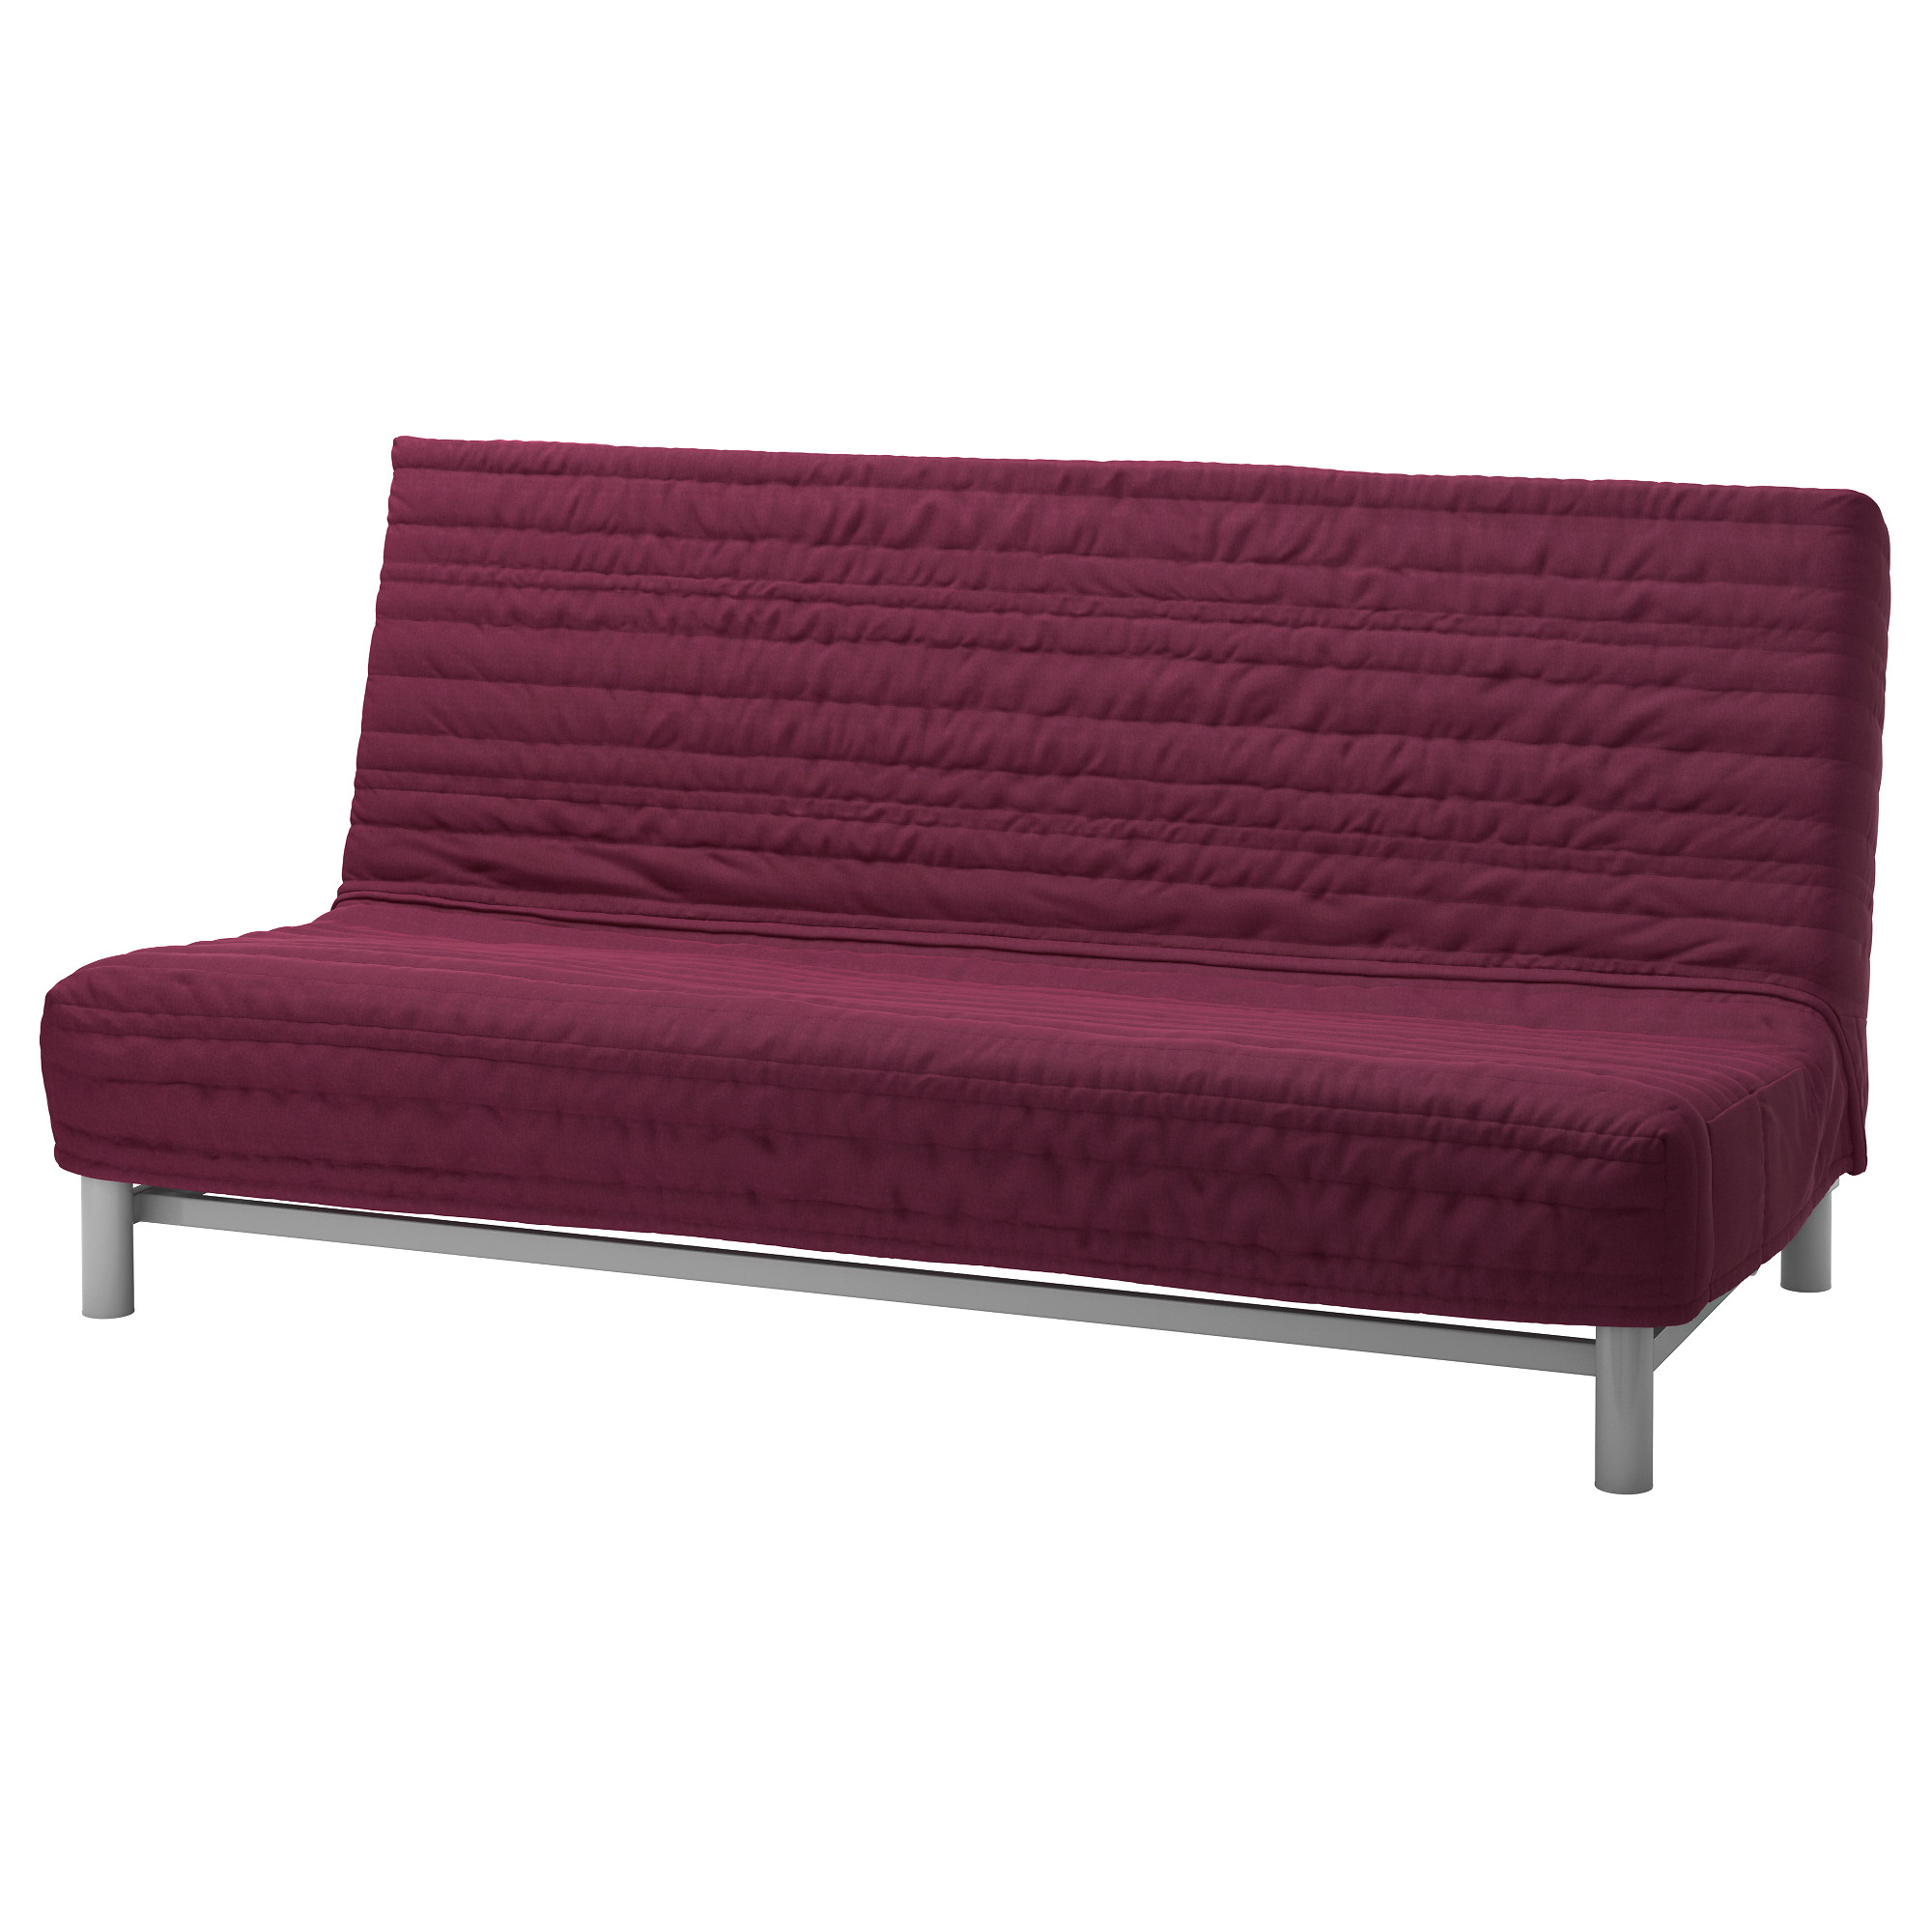 BEDDINGE Cover for sofa bed Knisa cerise IKEA